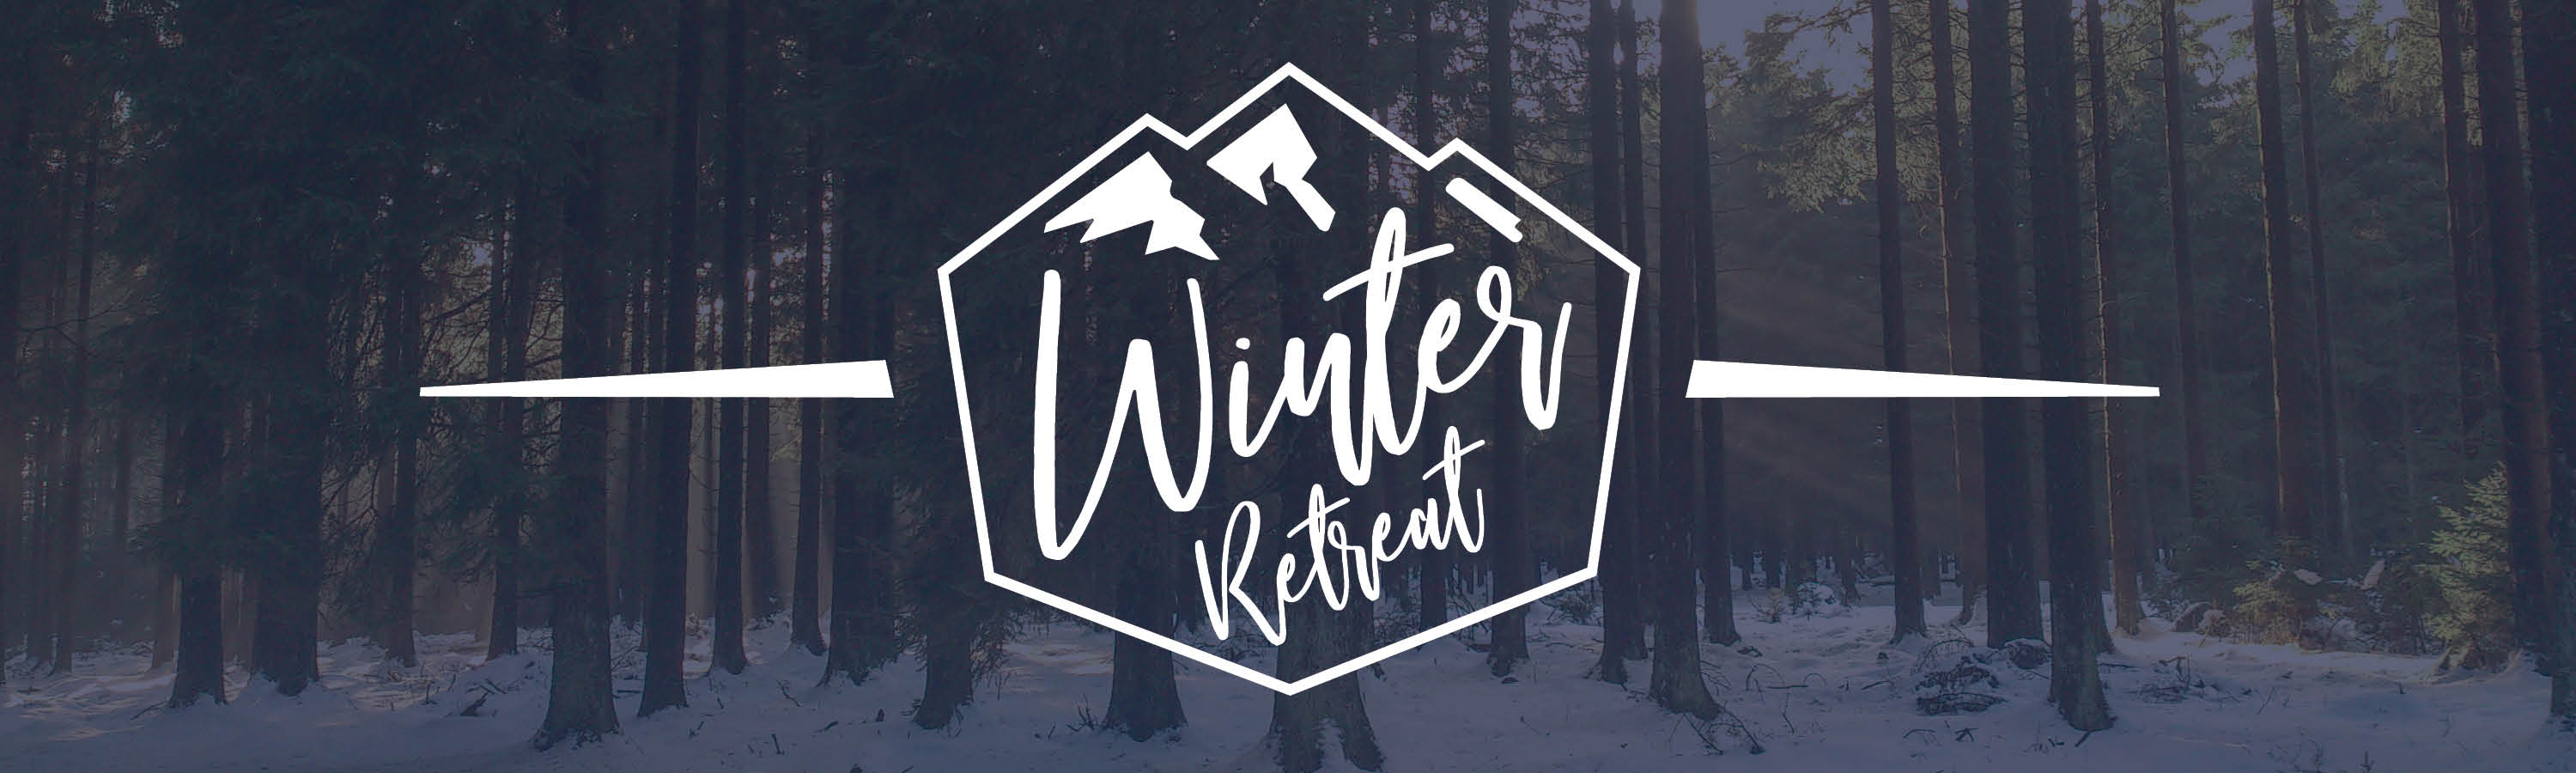 Winter retreat-MS